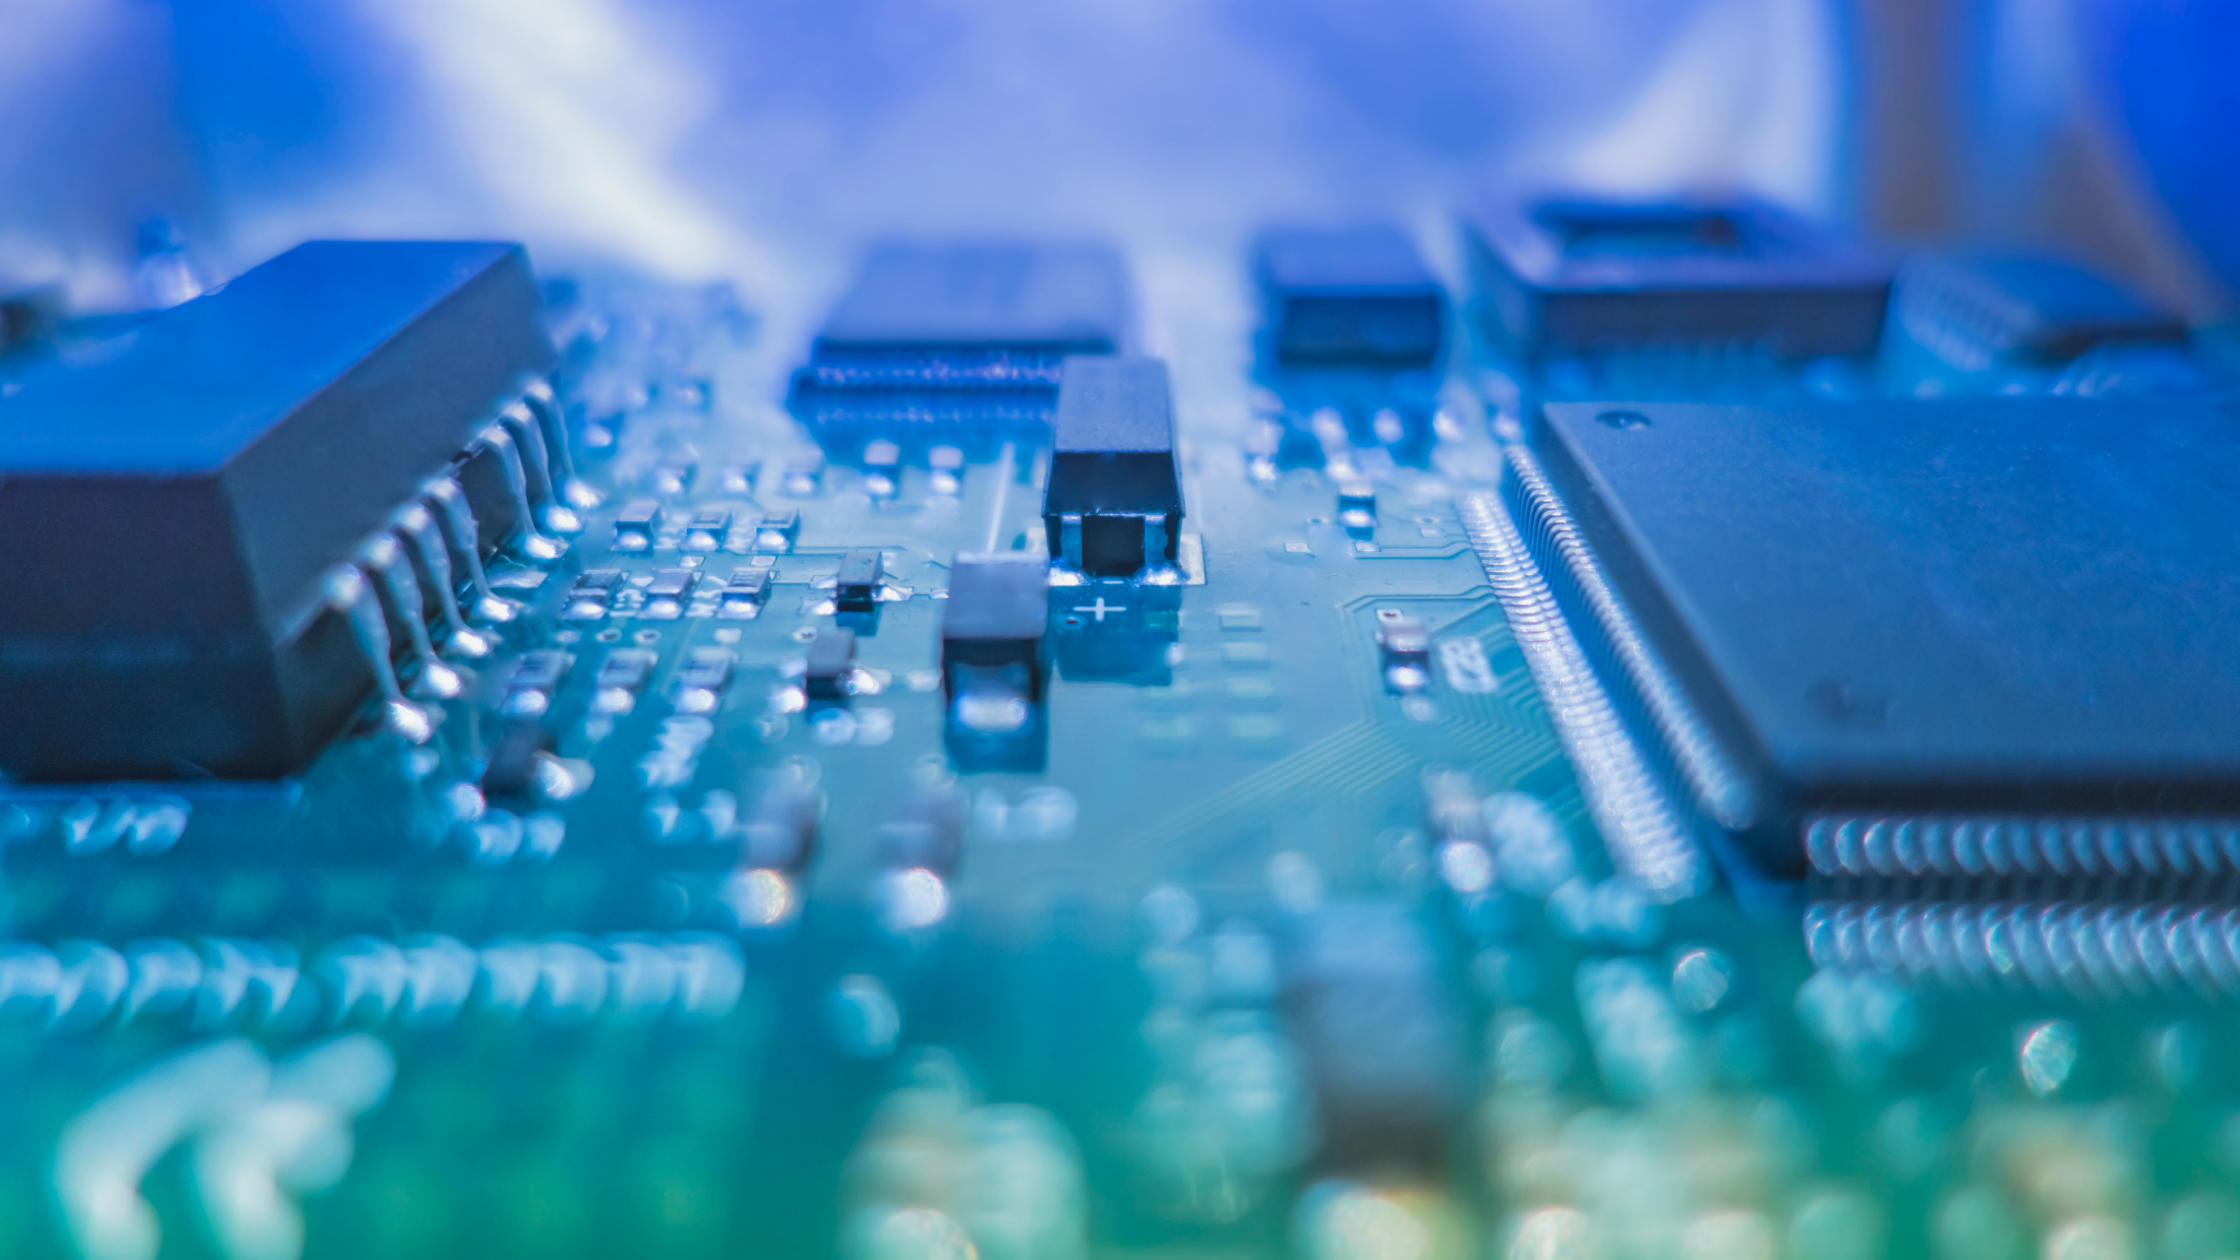 How the Chip Shortage Highlights a Demand for Technology & Innovation